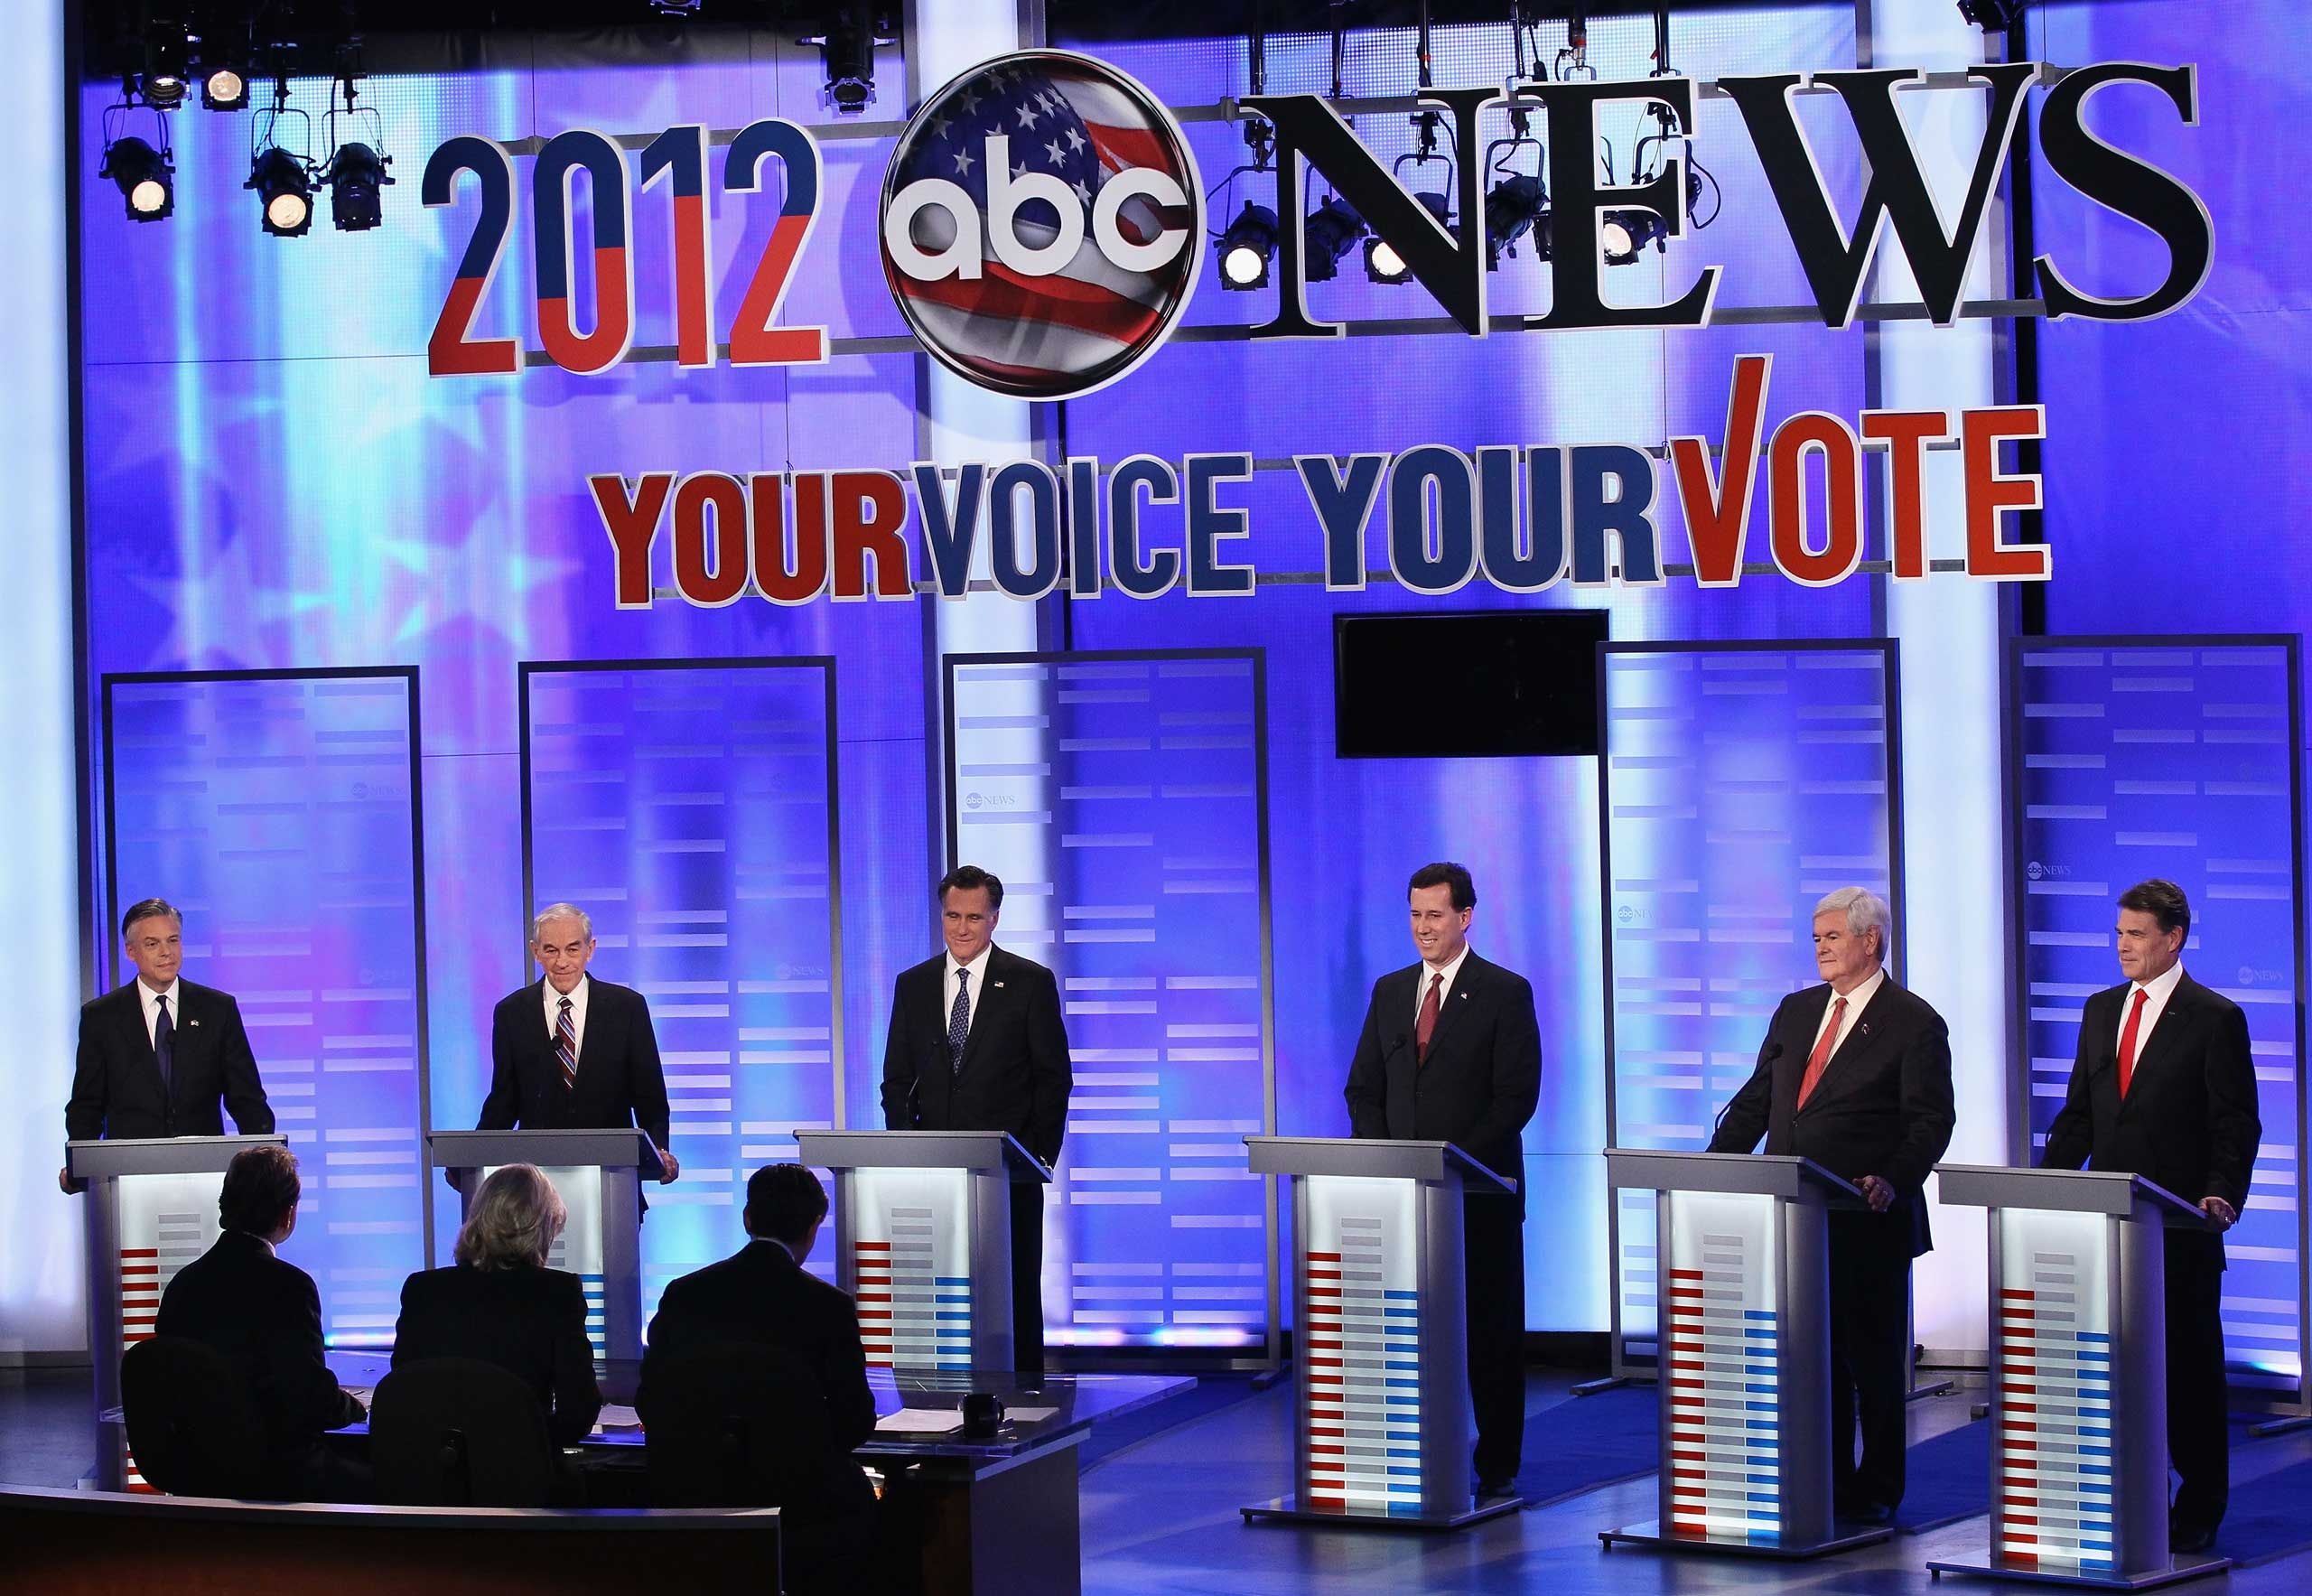 Republican presidential candidates are introduced during the ABC News, Yahoo! News, and WMUR Republican Presidential Debate at Saint Anselm College in Manchester, N.H. on Jan. 7, 2012.